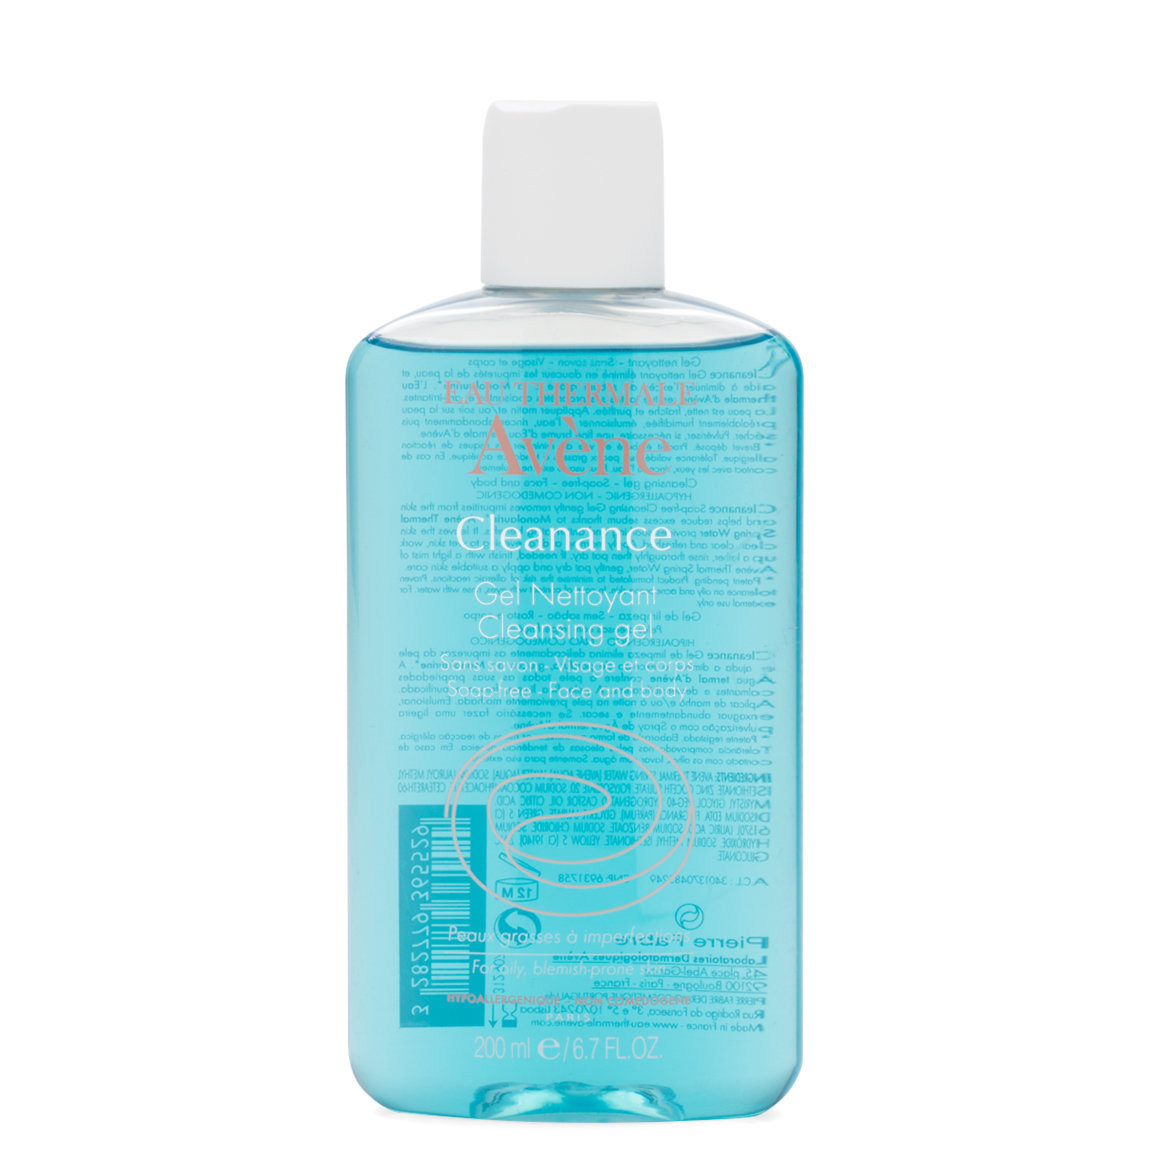 Eau Thermale Avène Cleanance Cleansing Gel 200 ml product swatch.